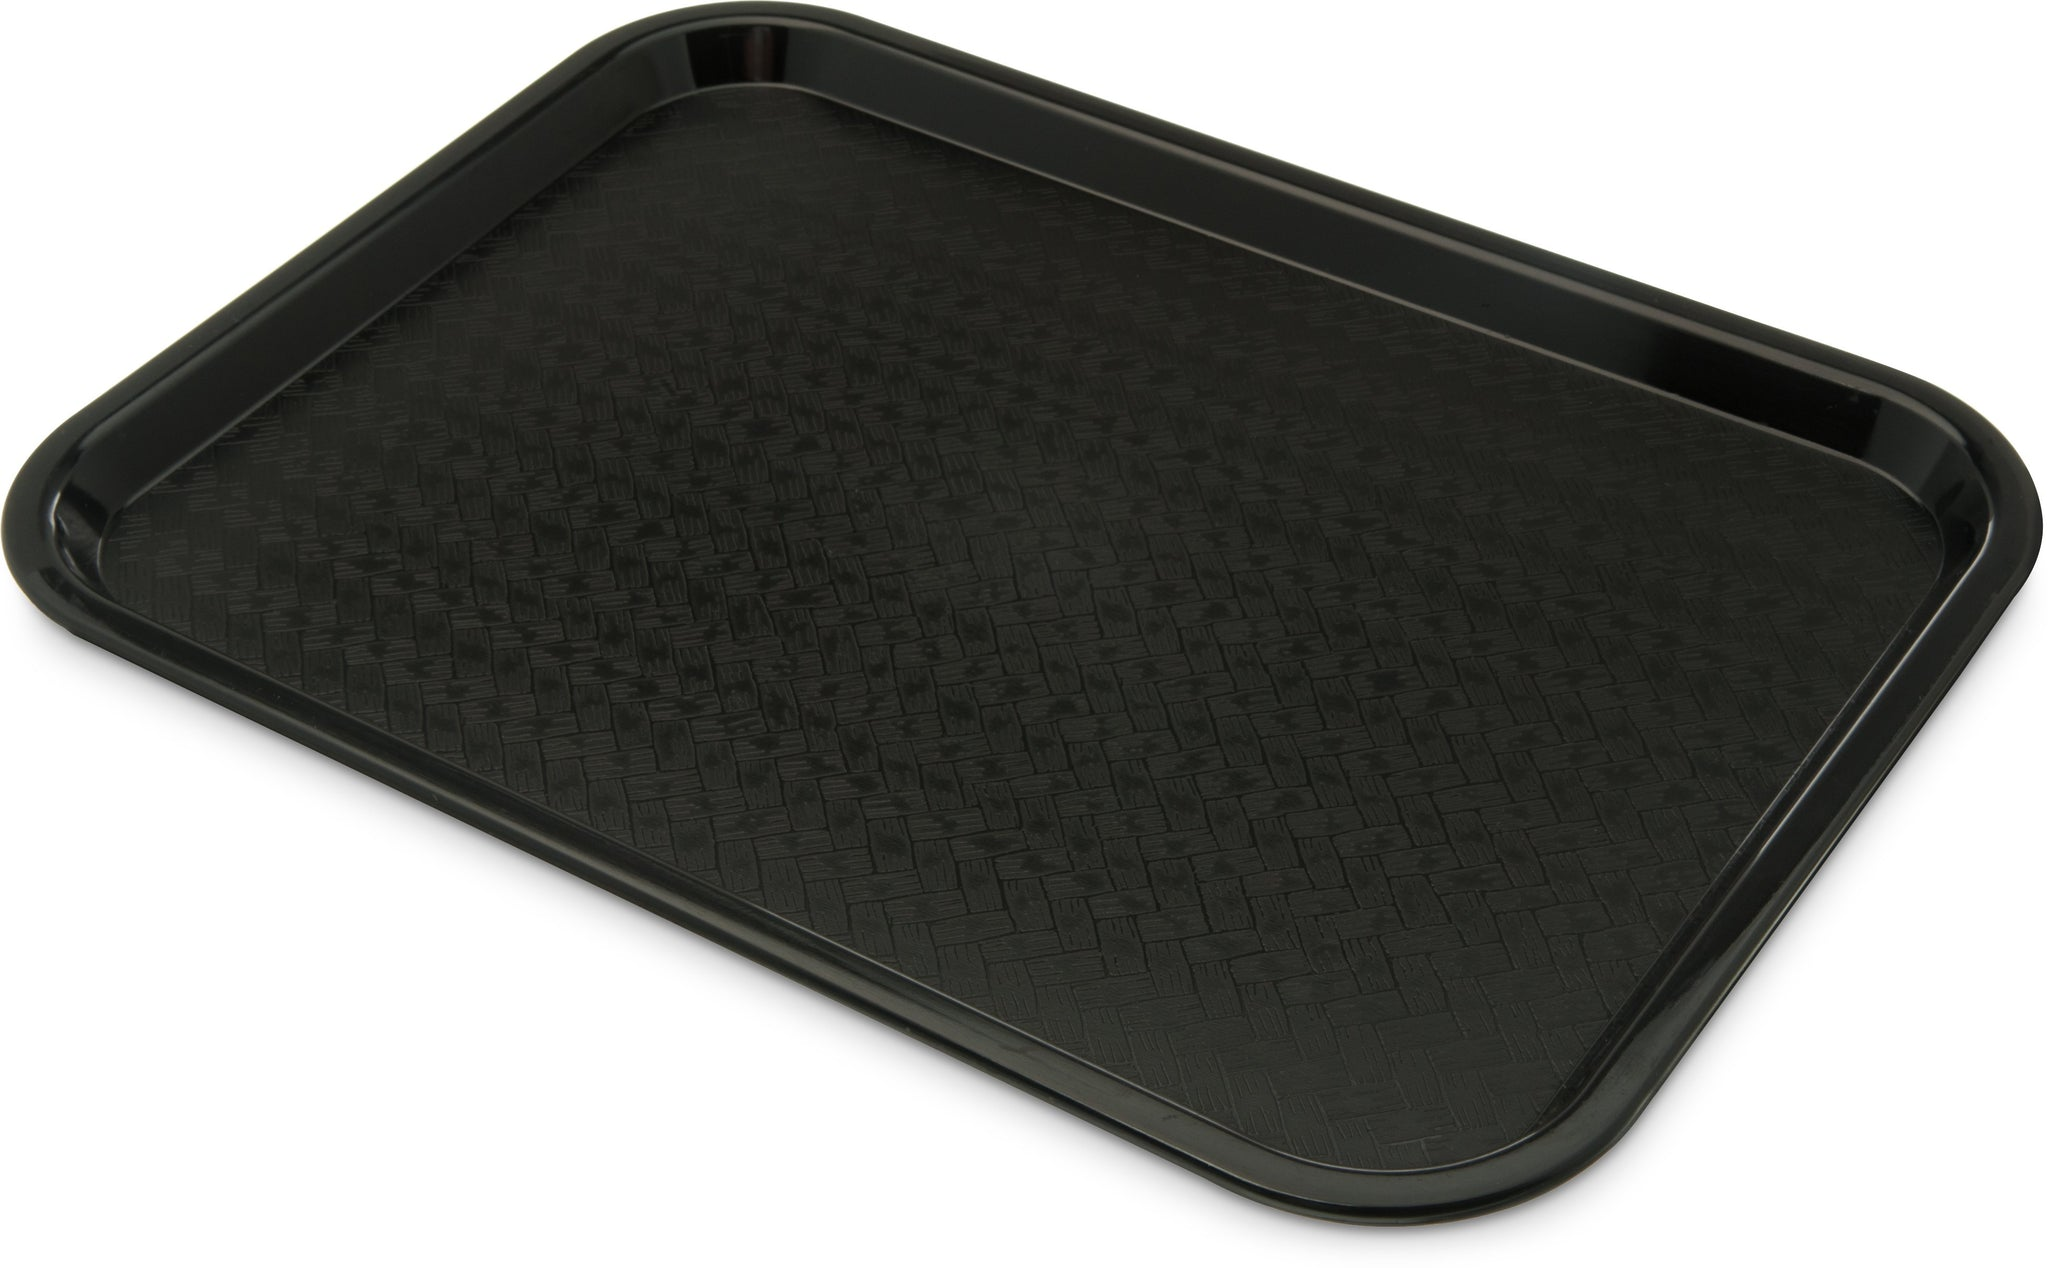 "Carlisle CT121603 Café Tray, 16-5/16""L x 12""W, rectangular, drying/stacking lugs, skid and scratch resistant, polypropylene, black, NSF"